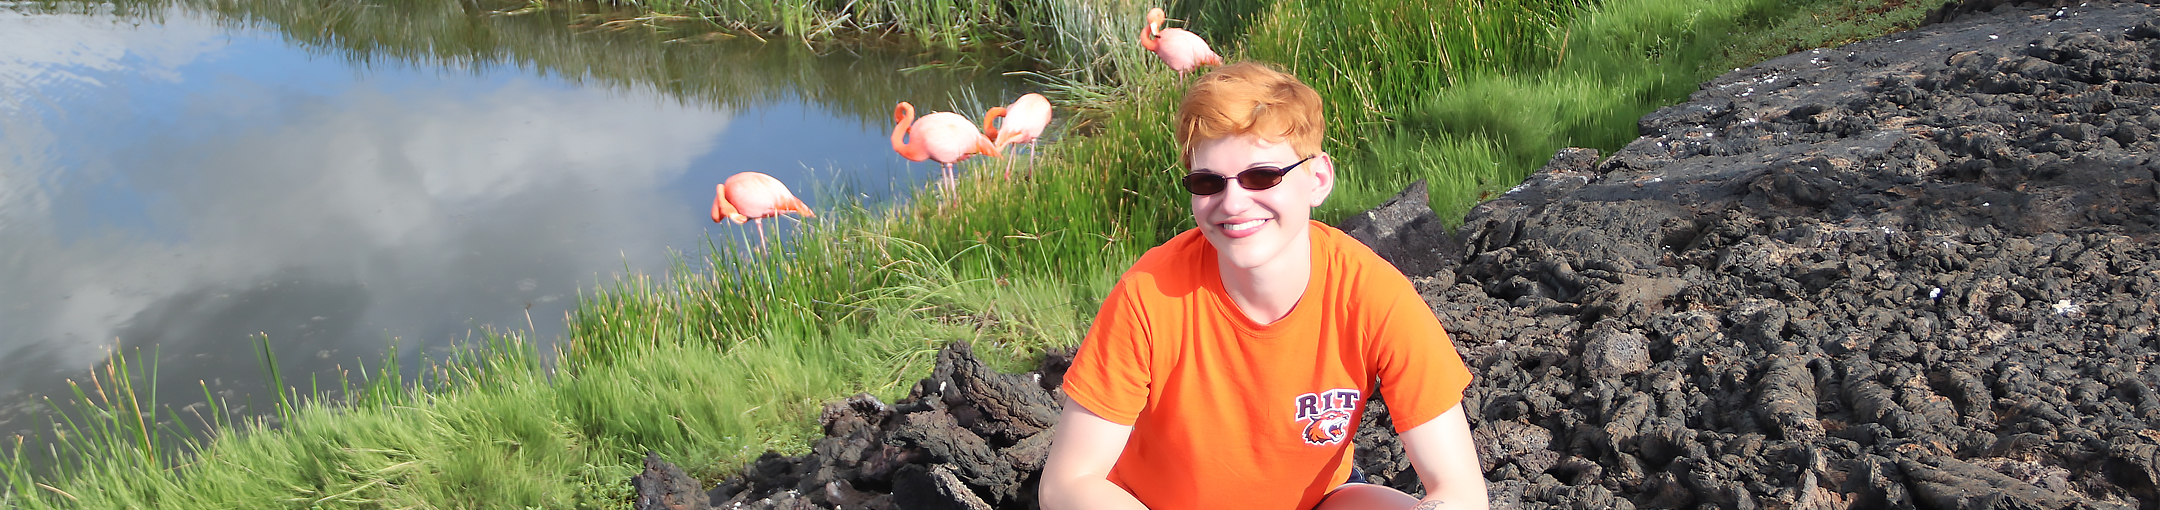 RIT student in front of flamingos in the Galapagos Islands